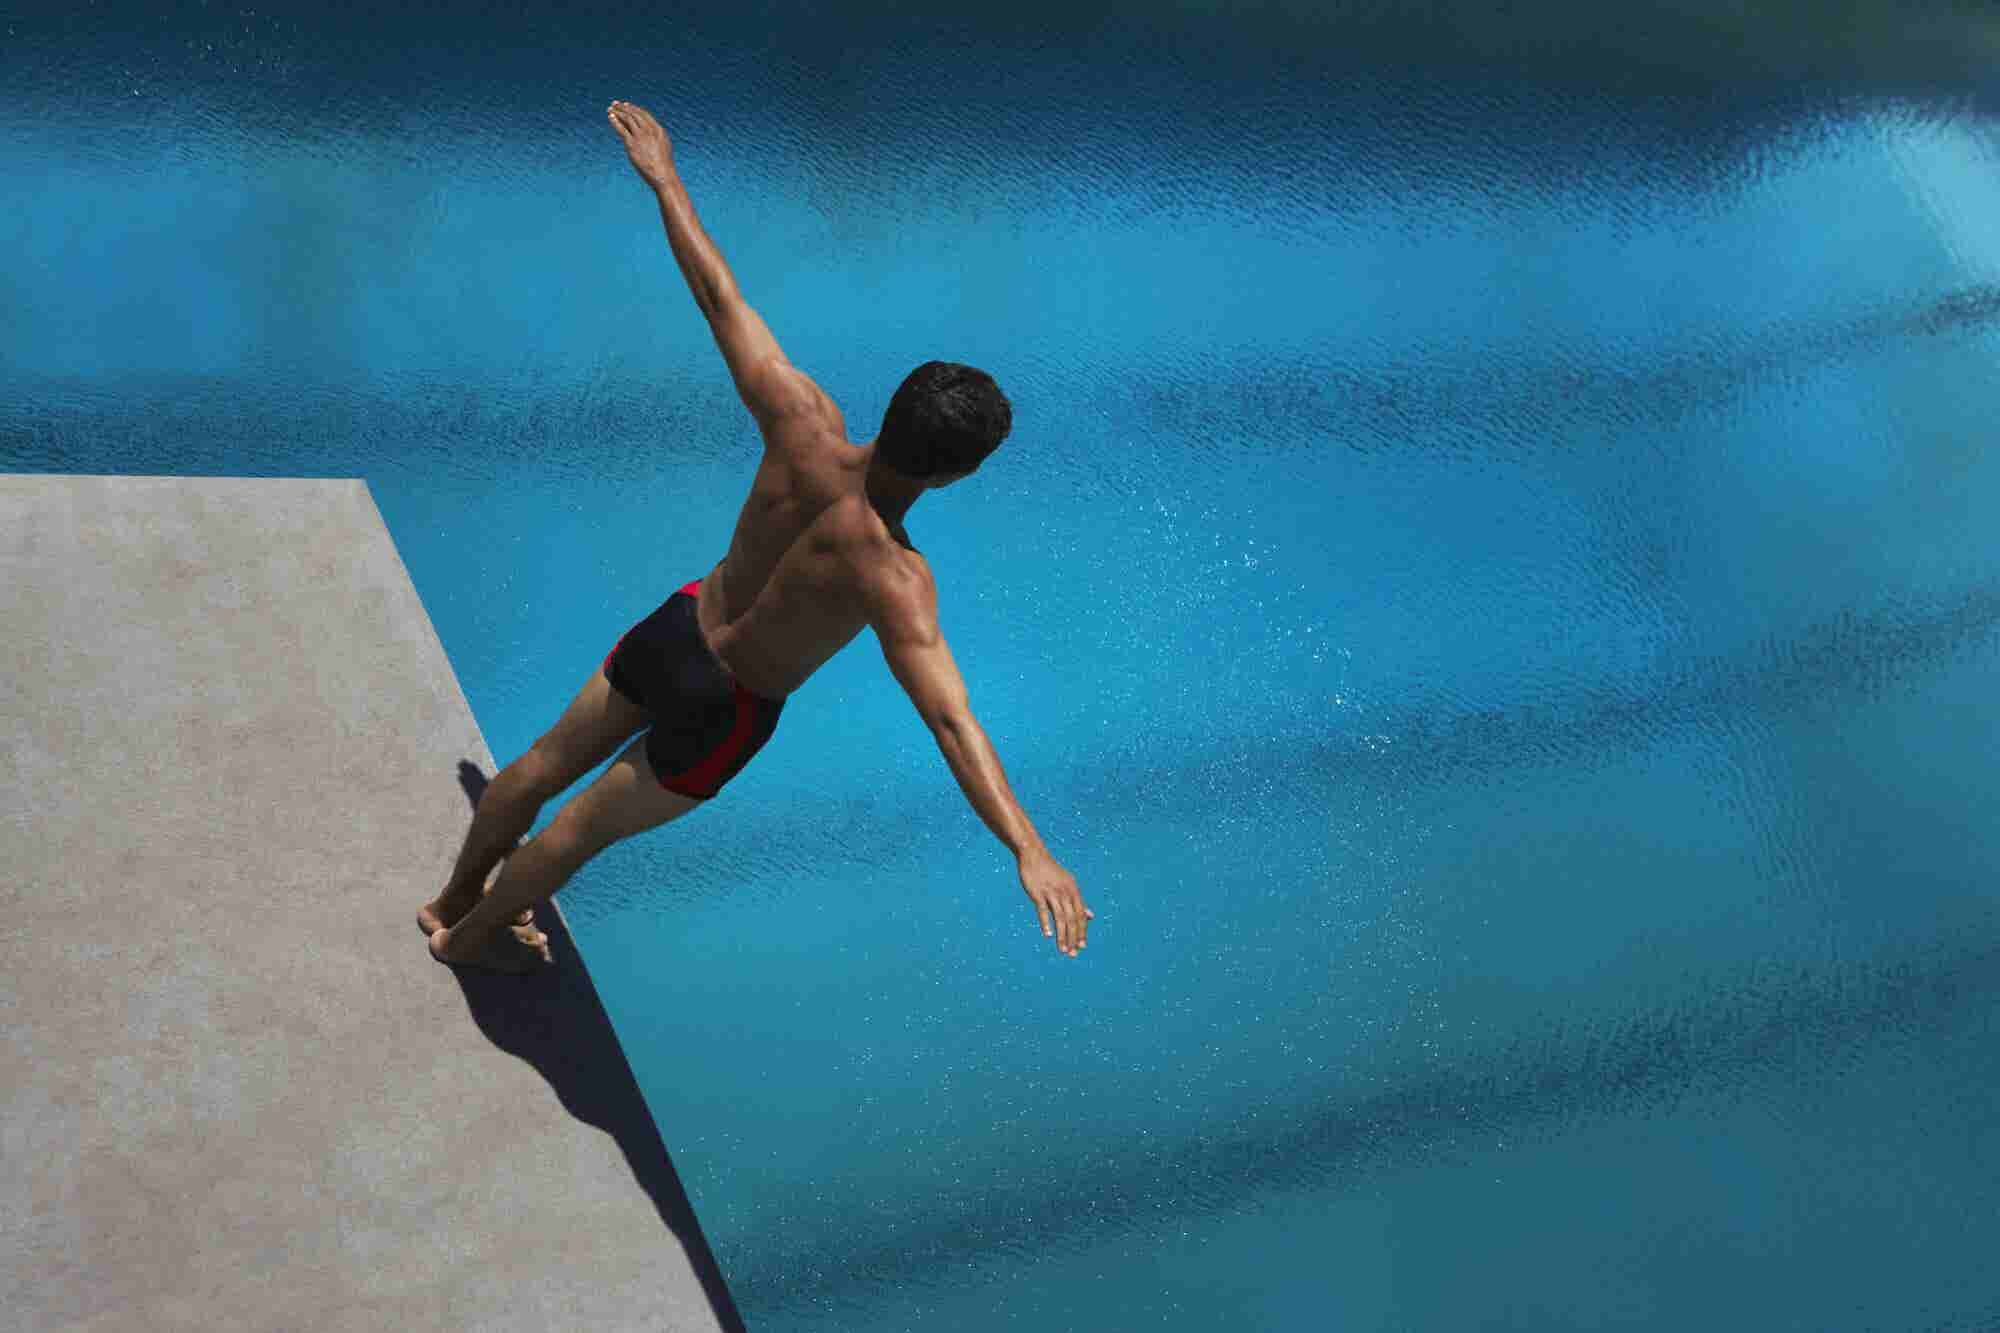 Dive In Headfirst or Stay out of the Pool: Why Marketing Needs an 'All-in' Approach.